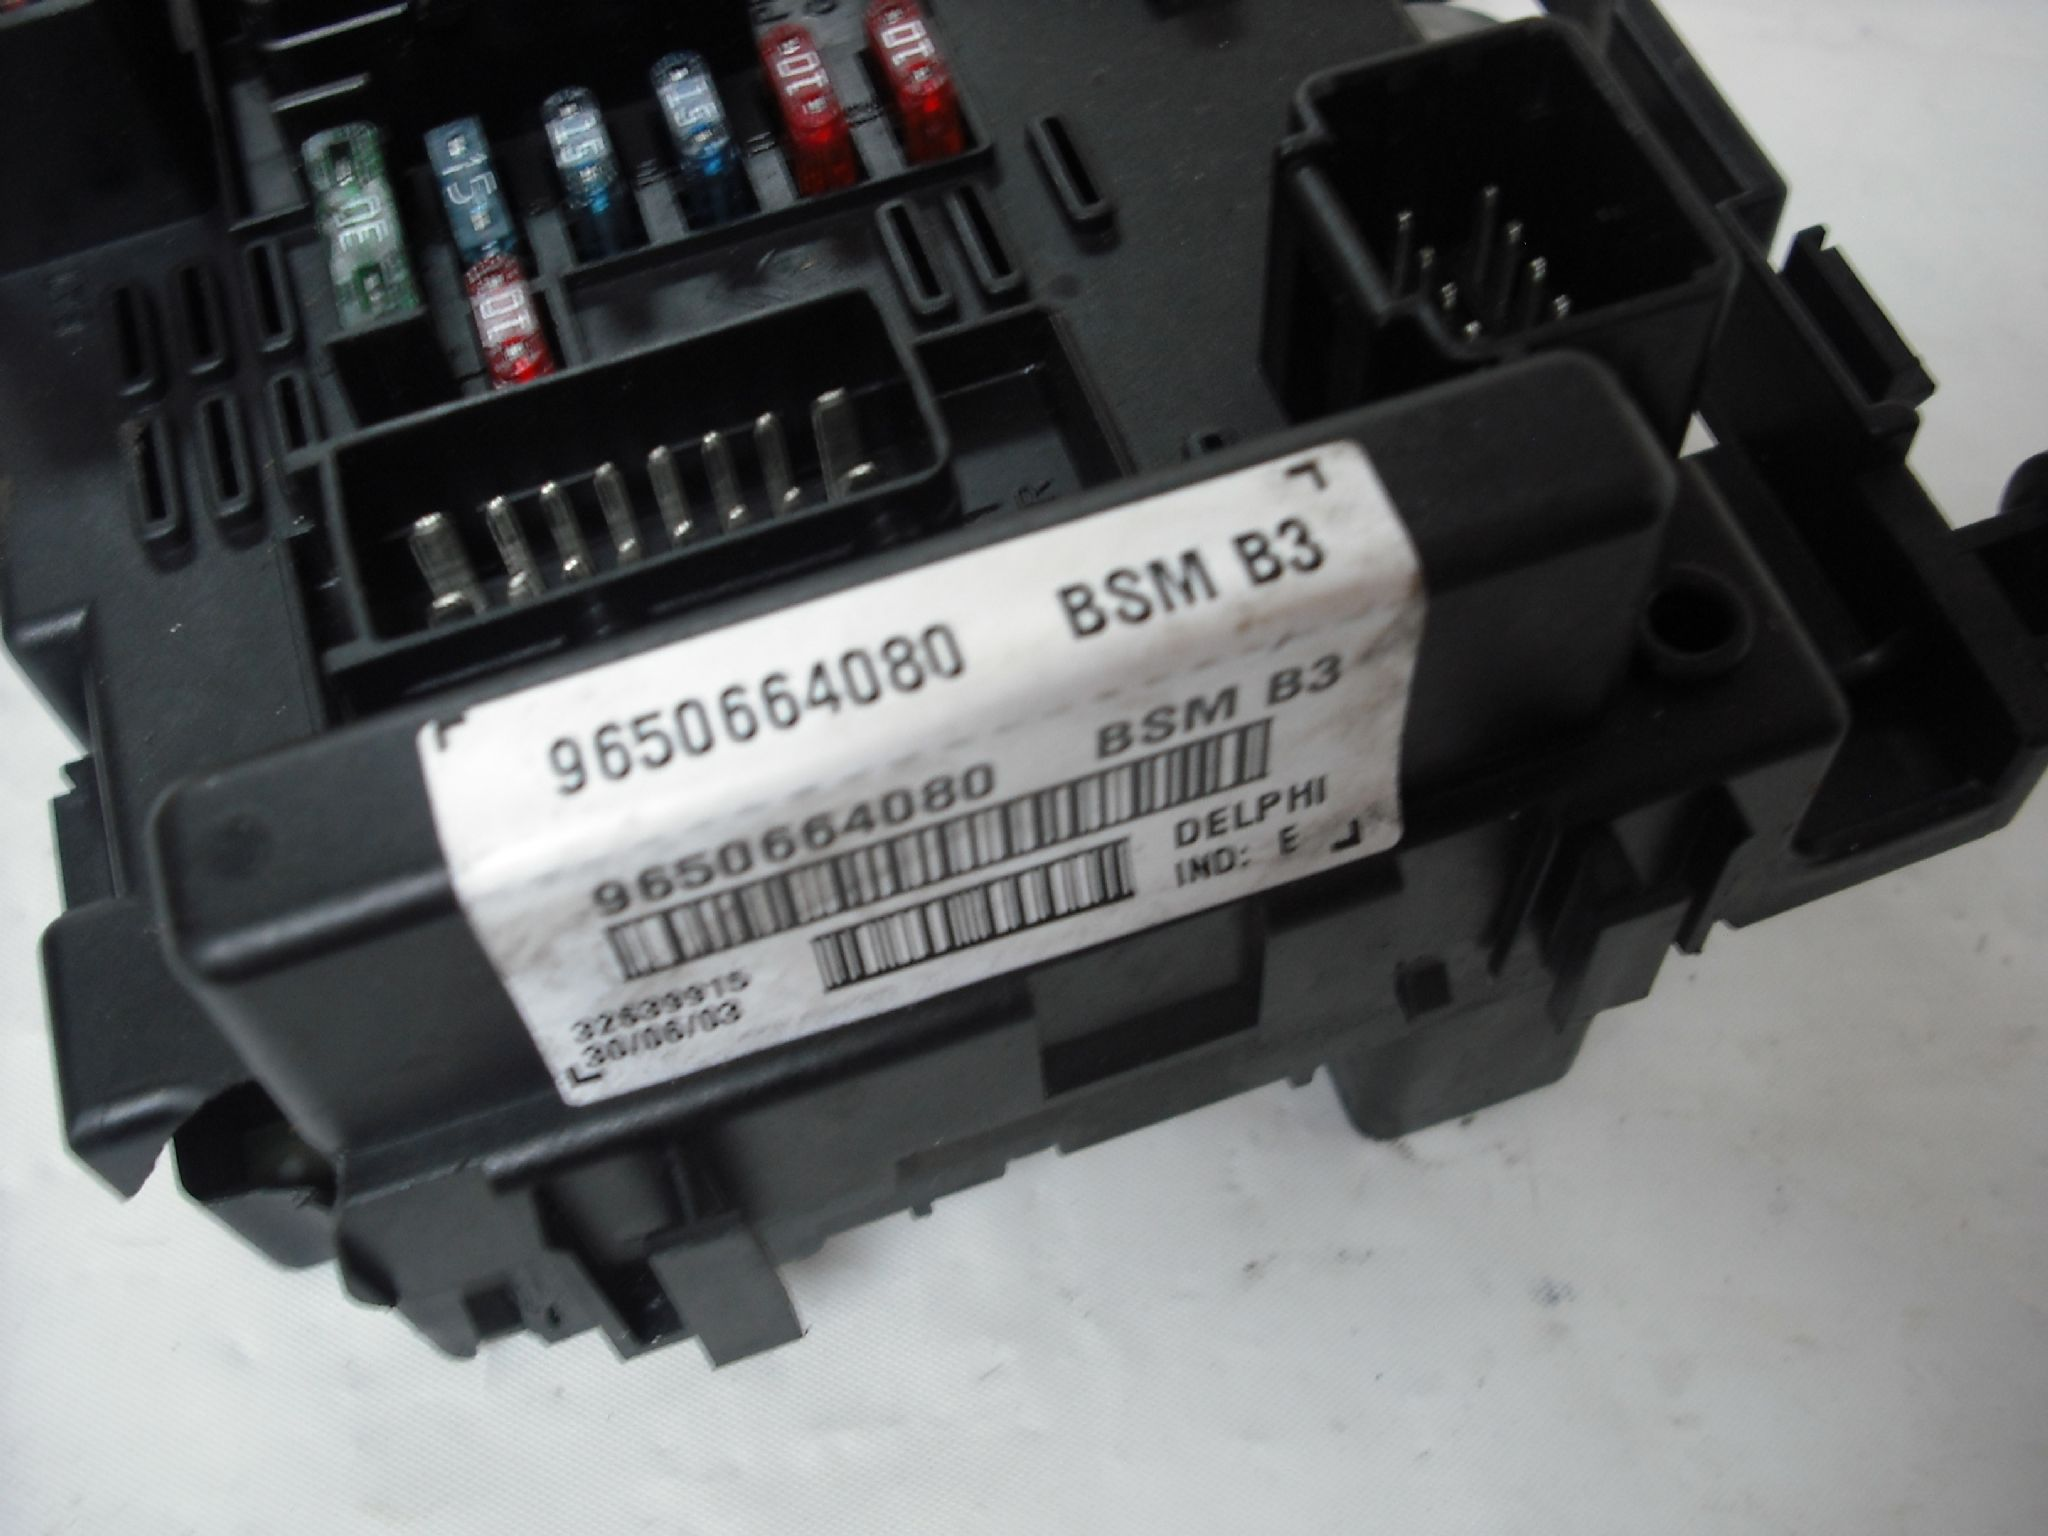 sorry out of stock ................. citroen c8 peugeot 807 fuse box controller 9650664080 bsm b3 delphi [2] 6197 p out of stock citroen c8 peugeot 807 fuse box delphi fuse box at bayanpartner.co